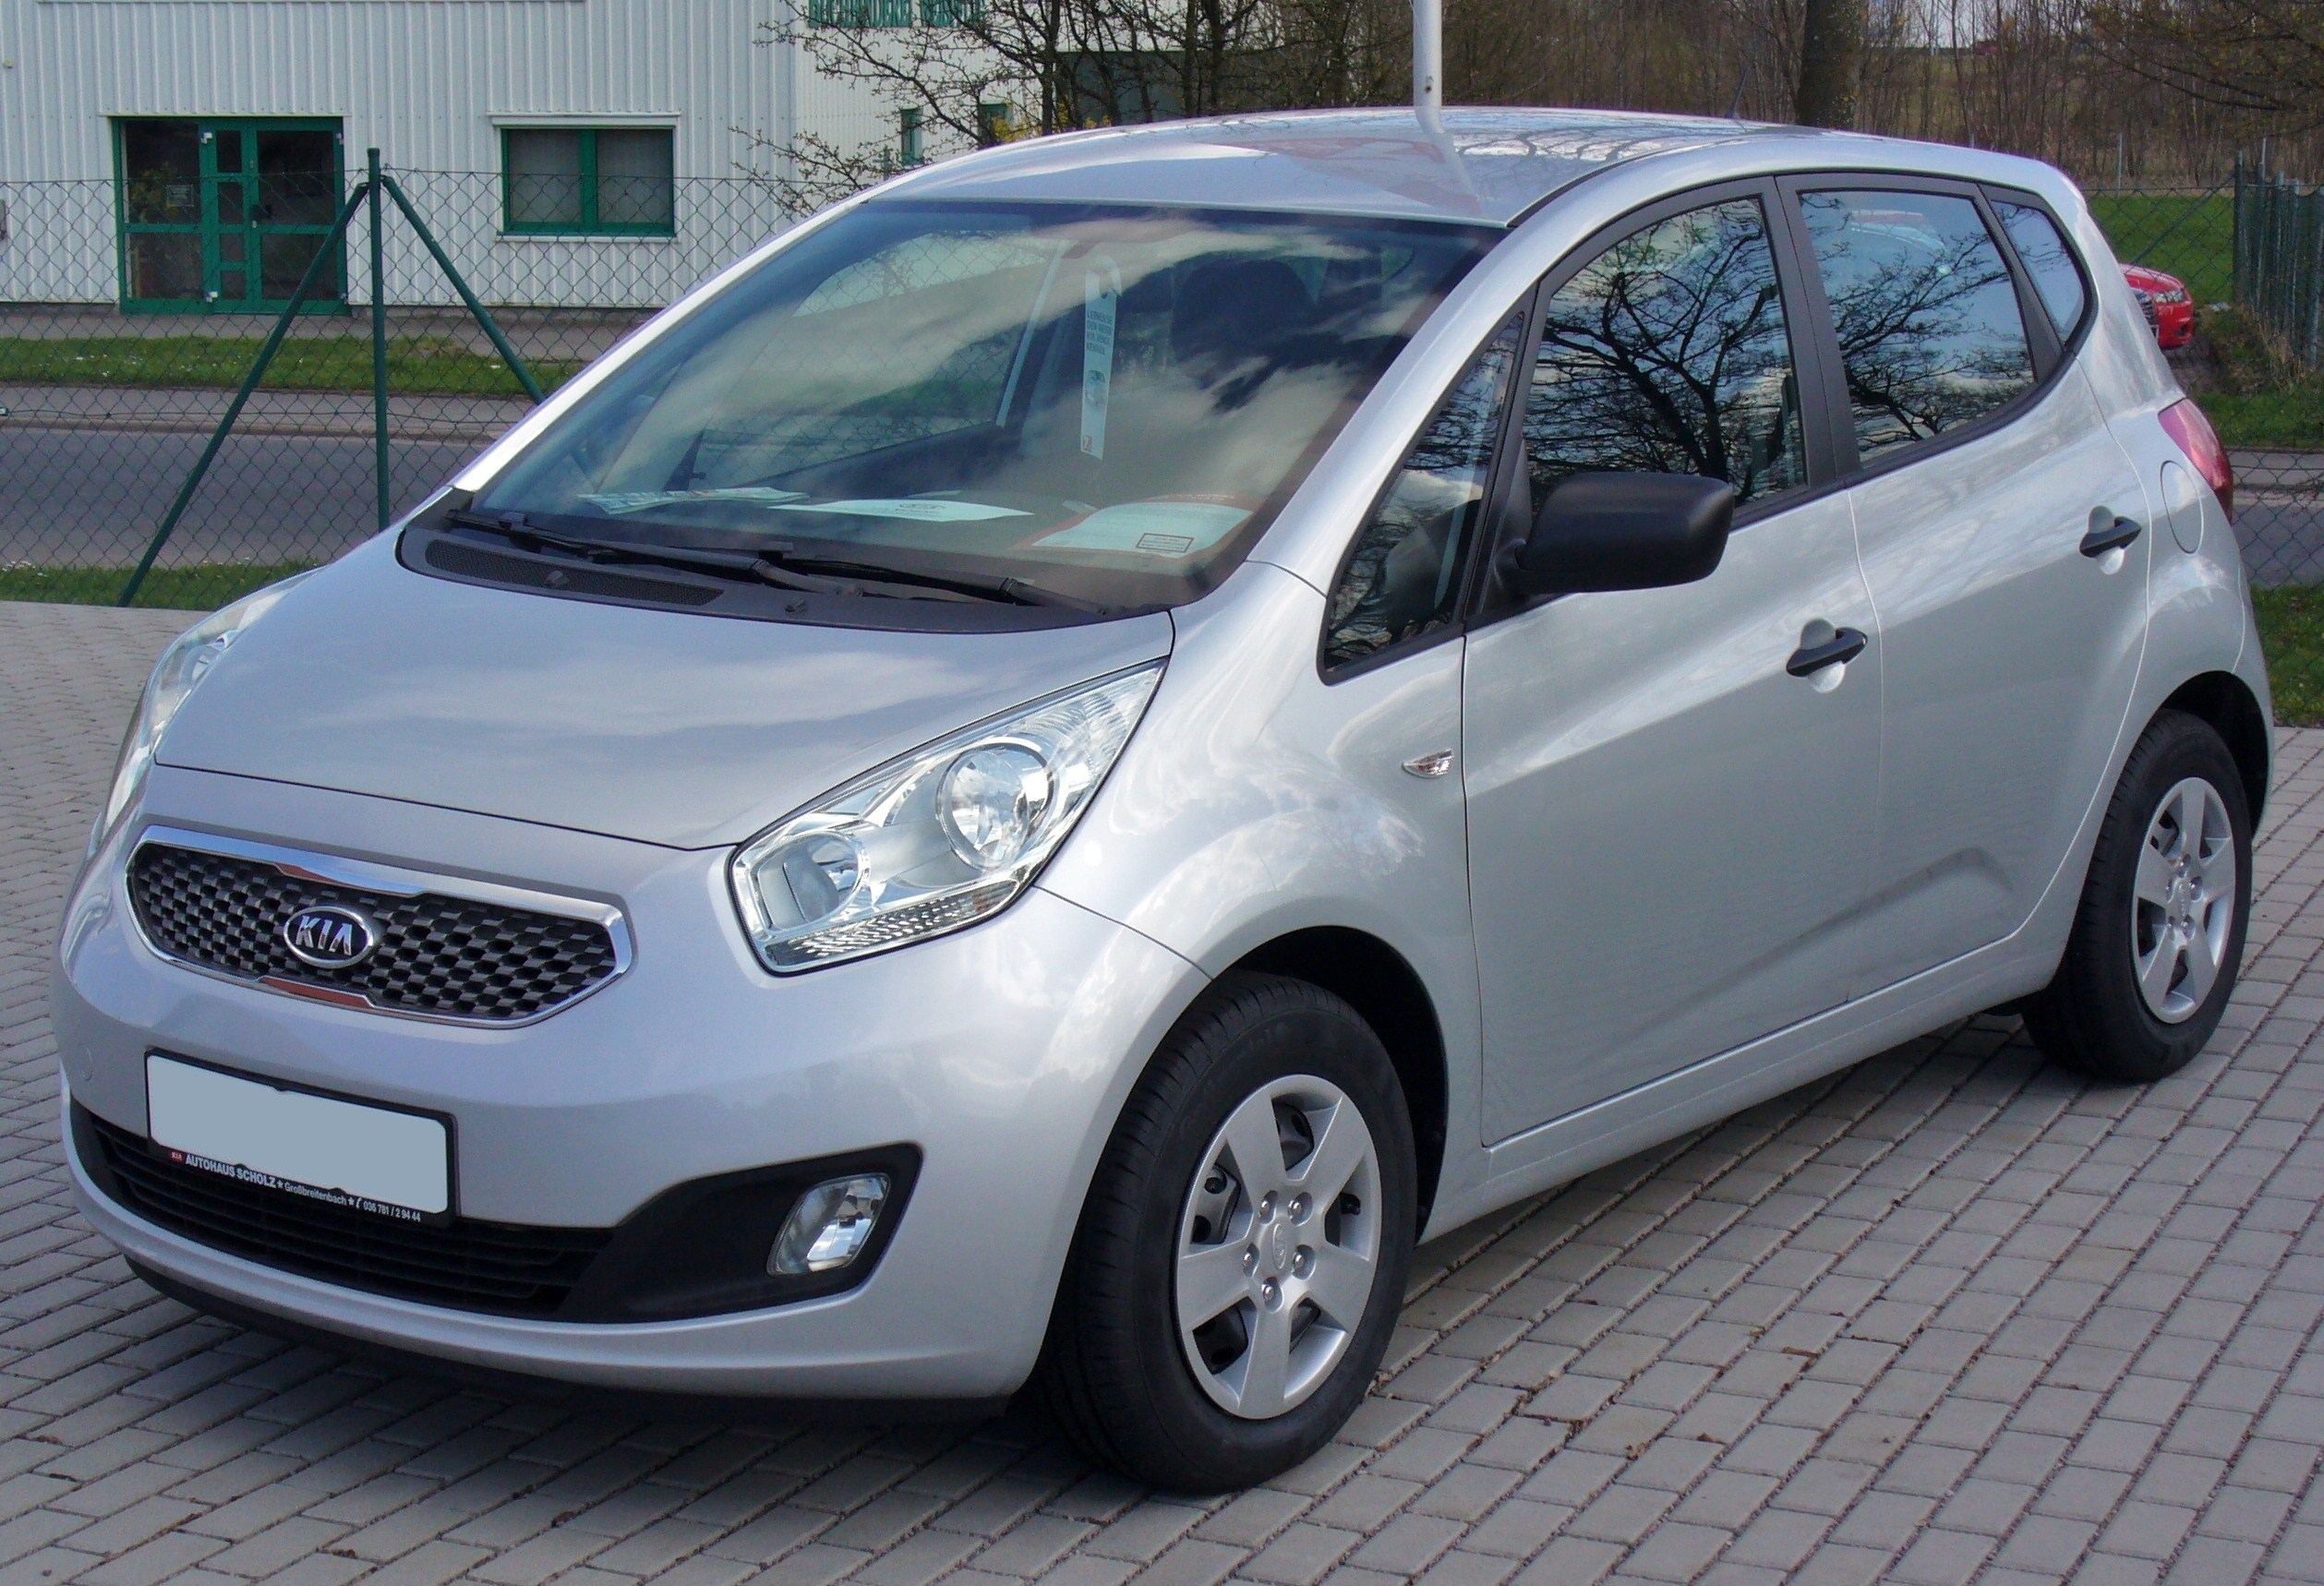 kia venga, photo #6